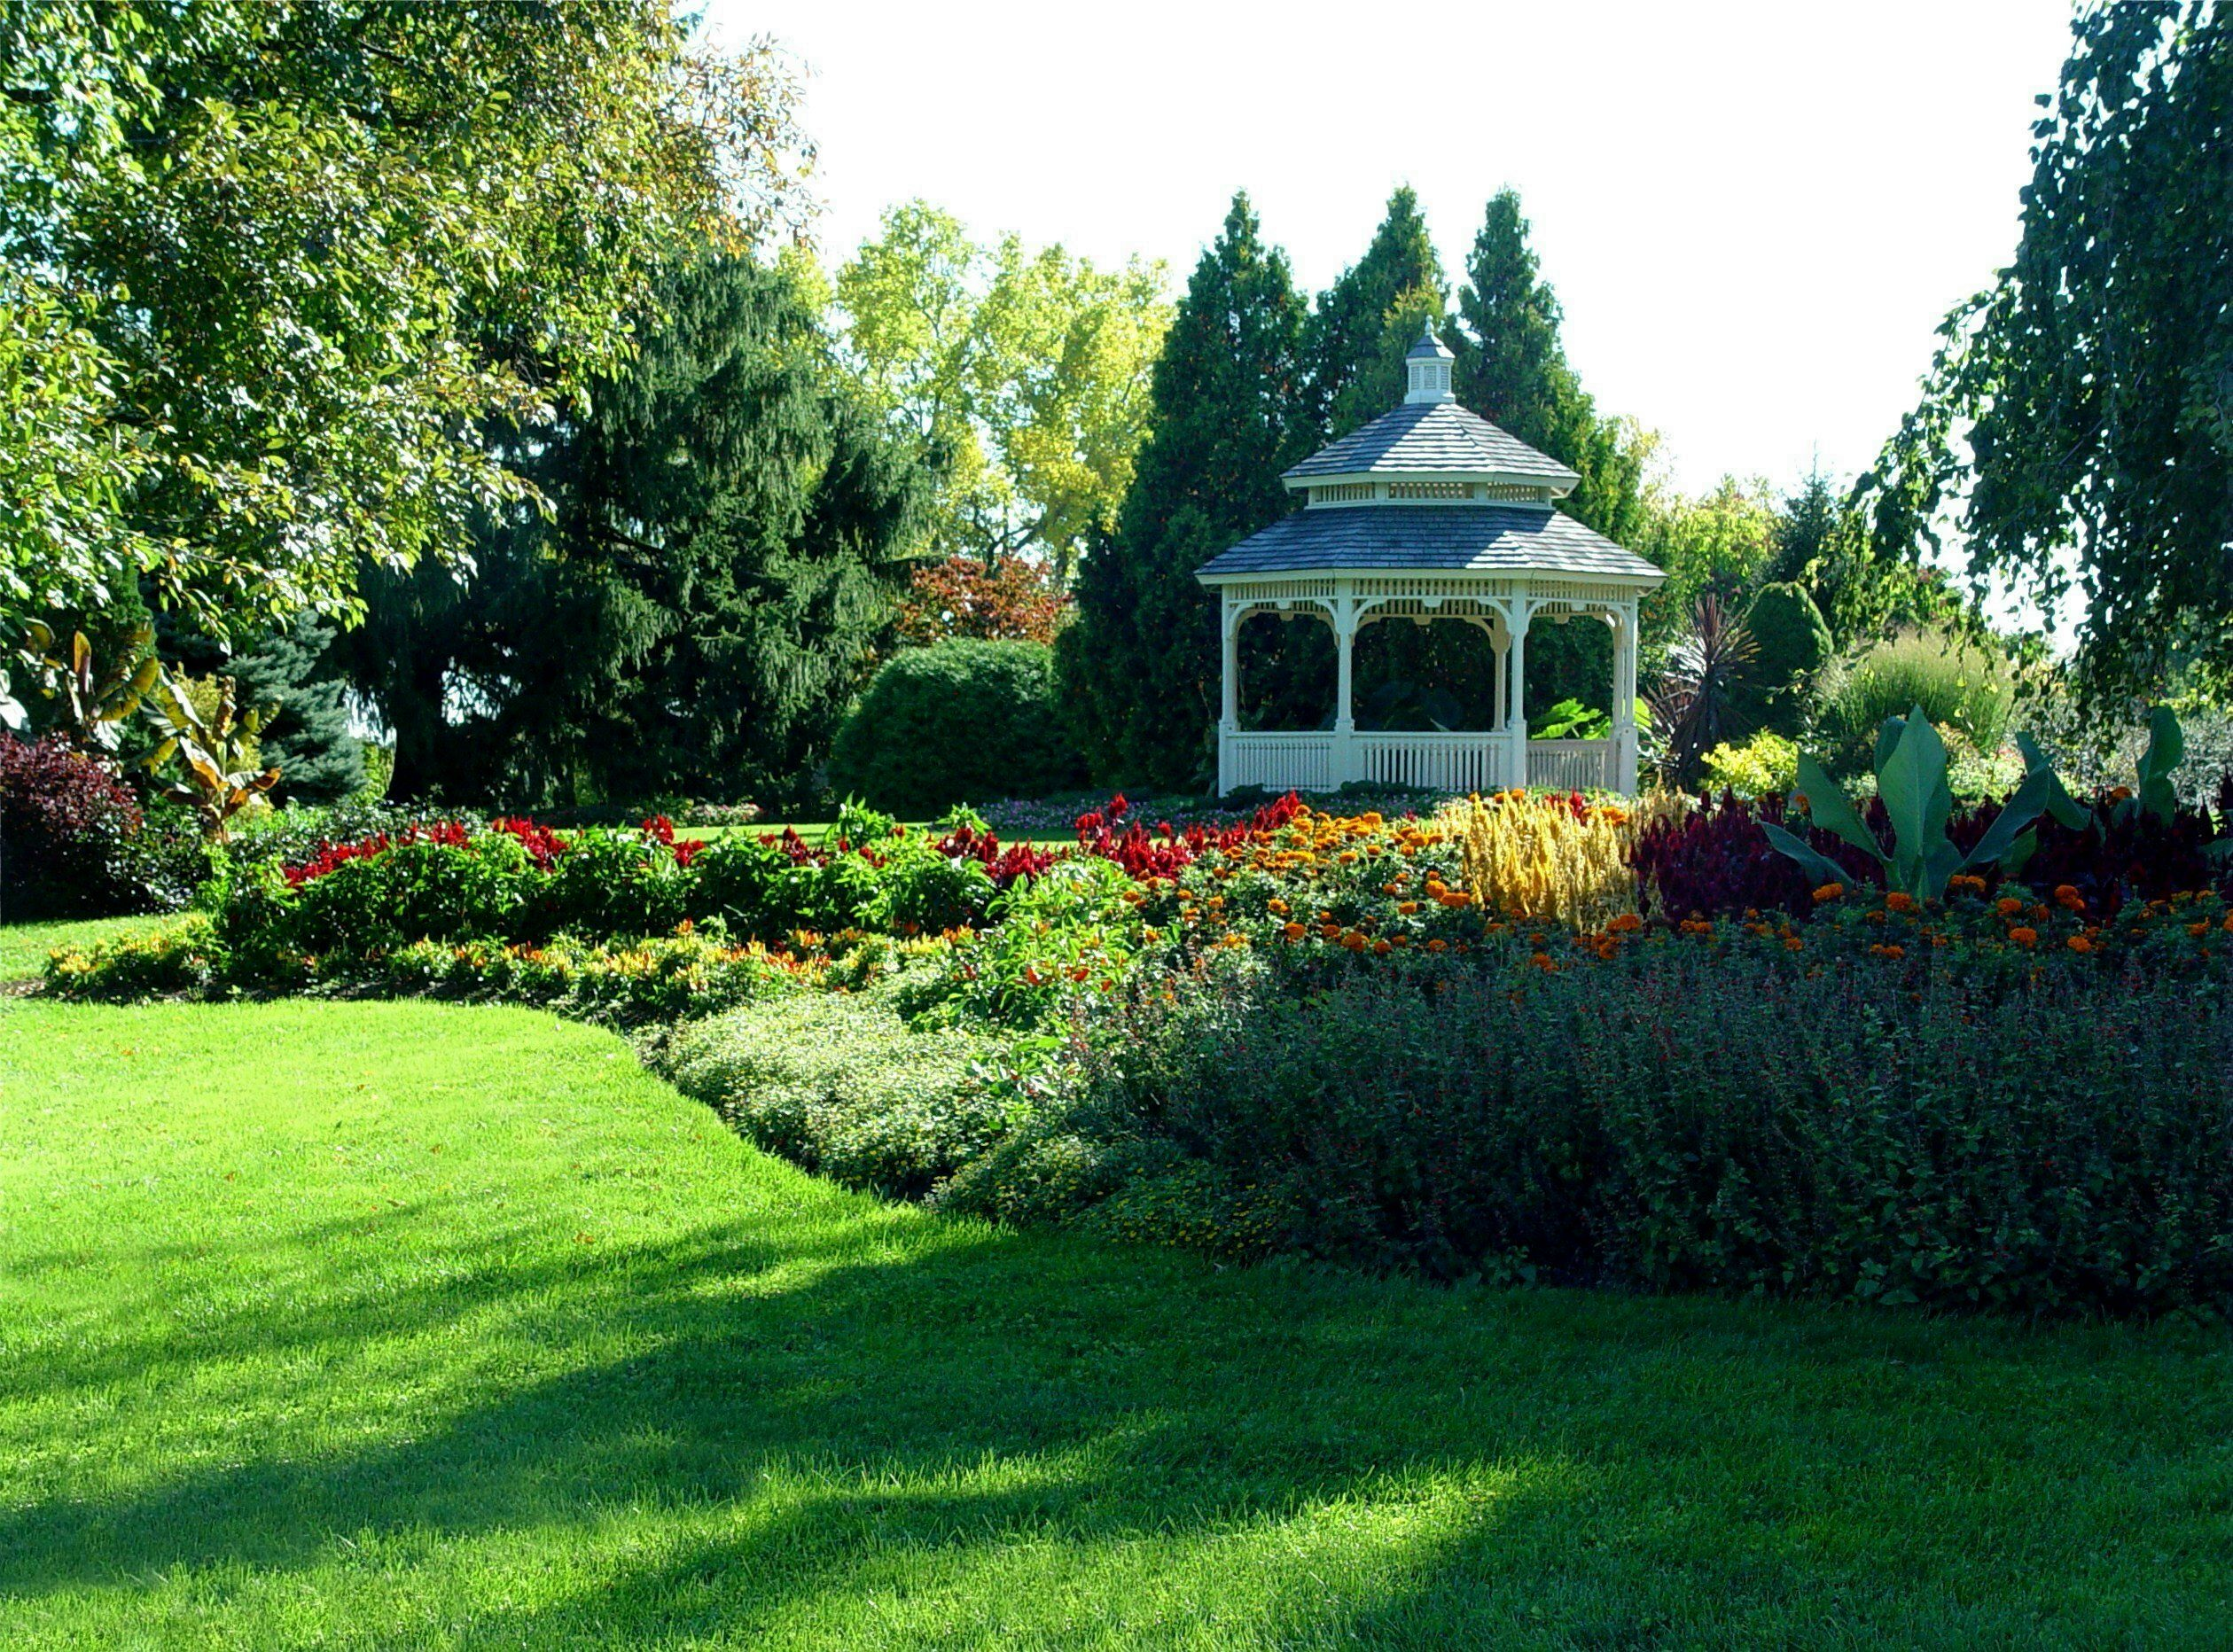 Hidden lake gardens it is a 755 acre botanical garden arboretum owned by michigan